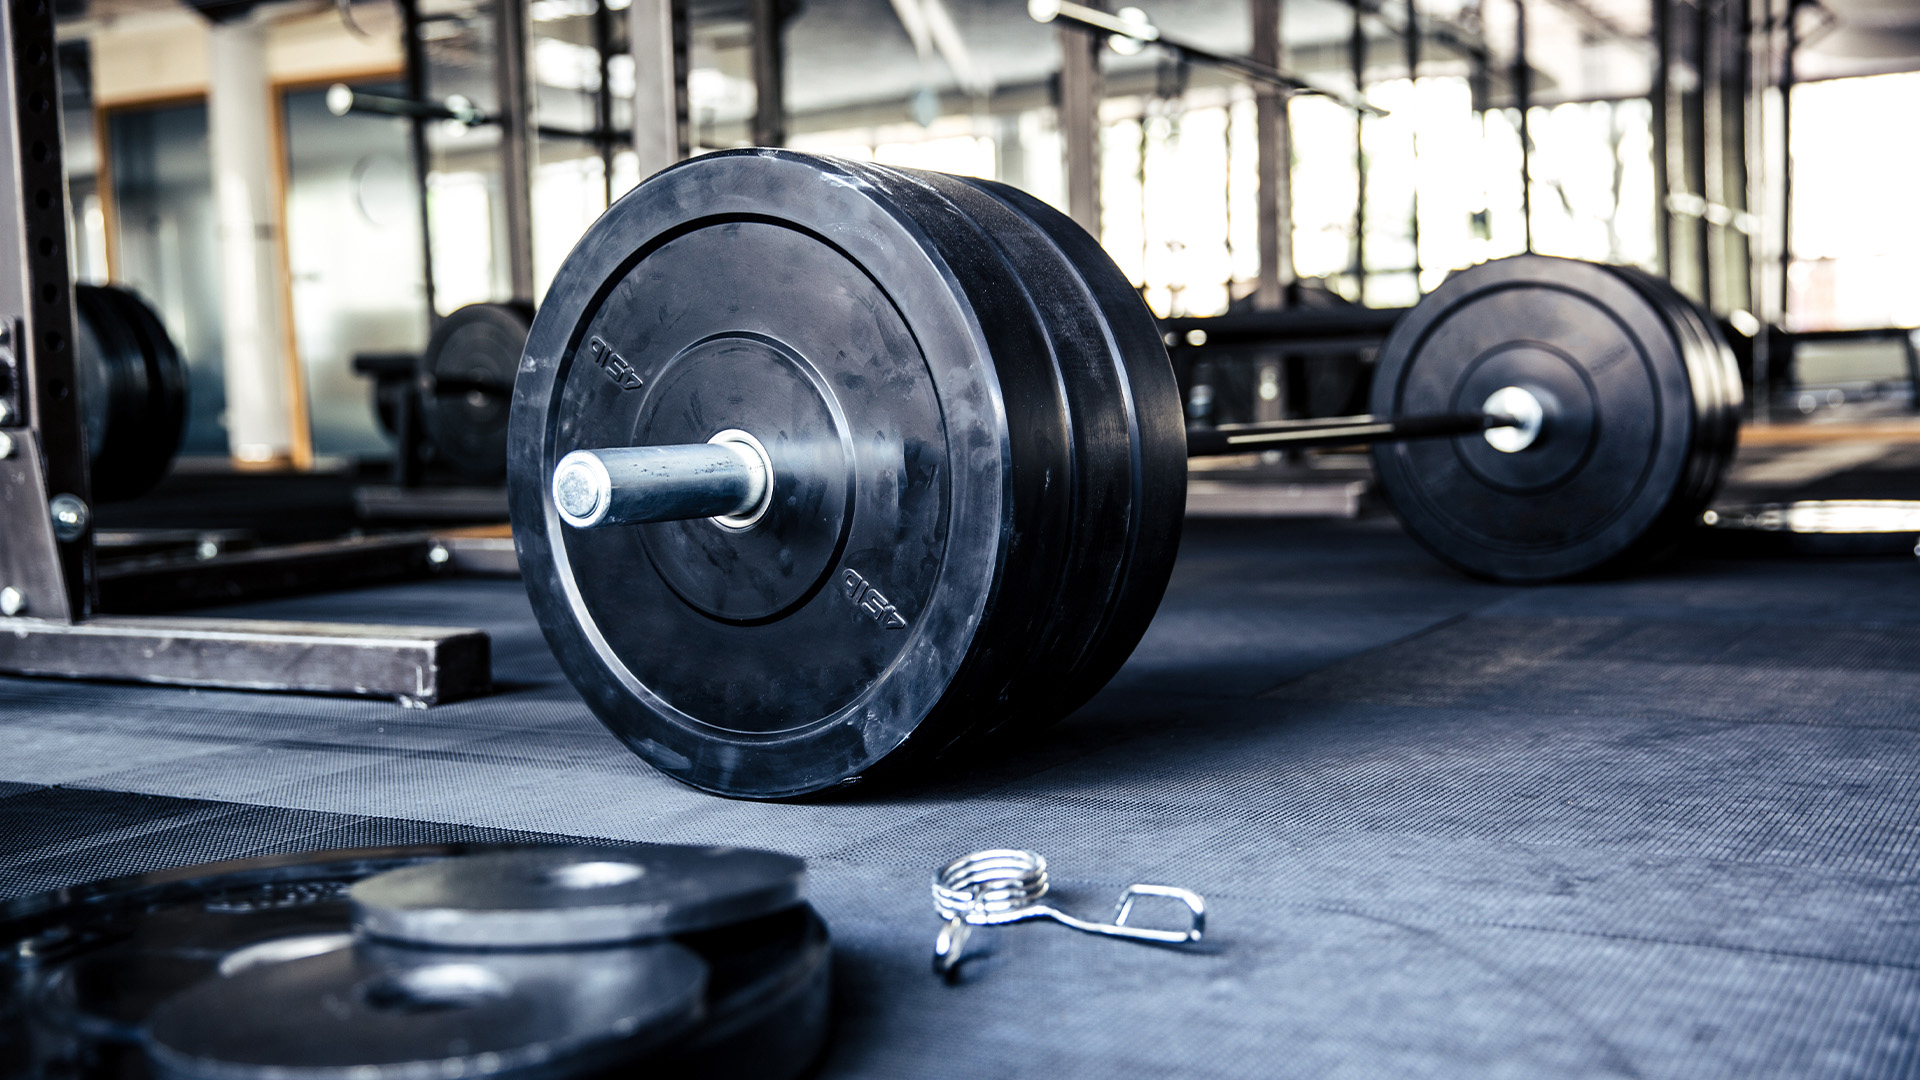 image of a barbell with weights on the floor